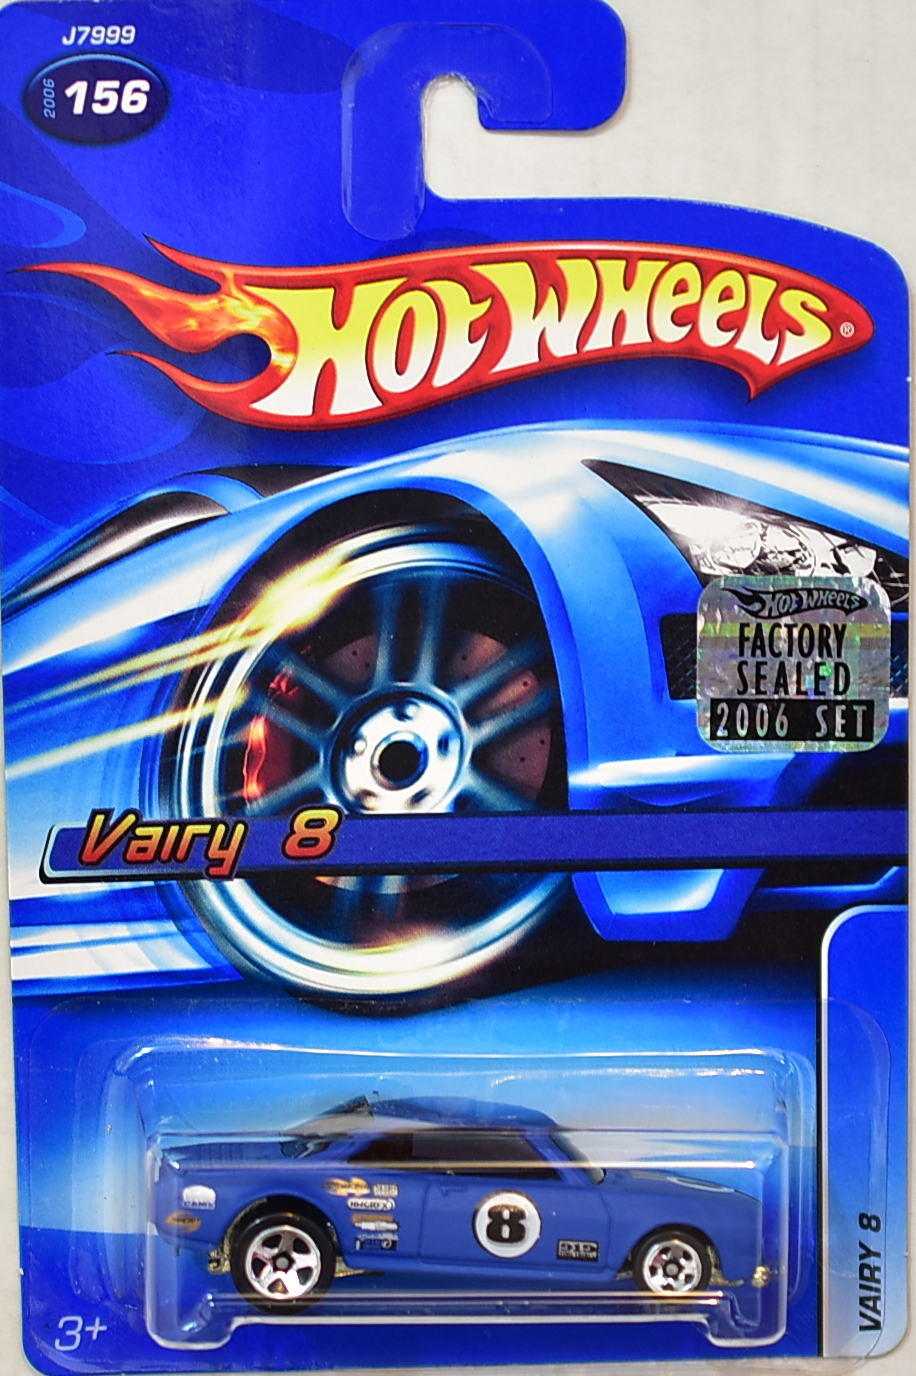 HOT WHEELS 2006 VAIRY 8 #156 BLUE FACTORY SEALED